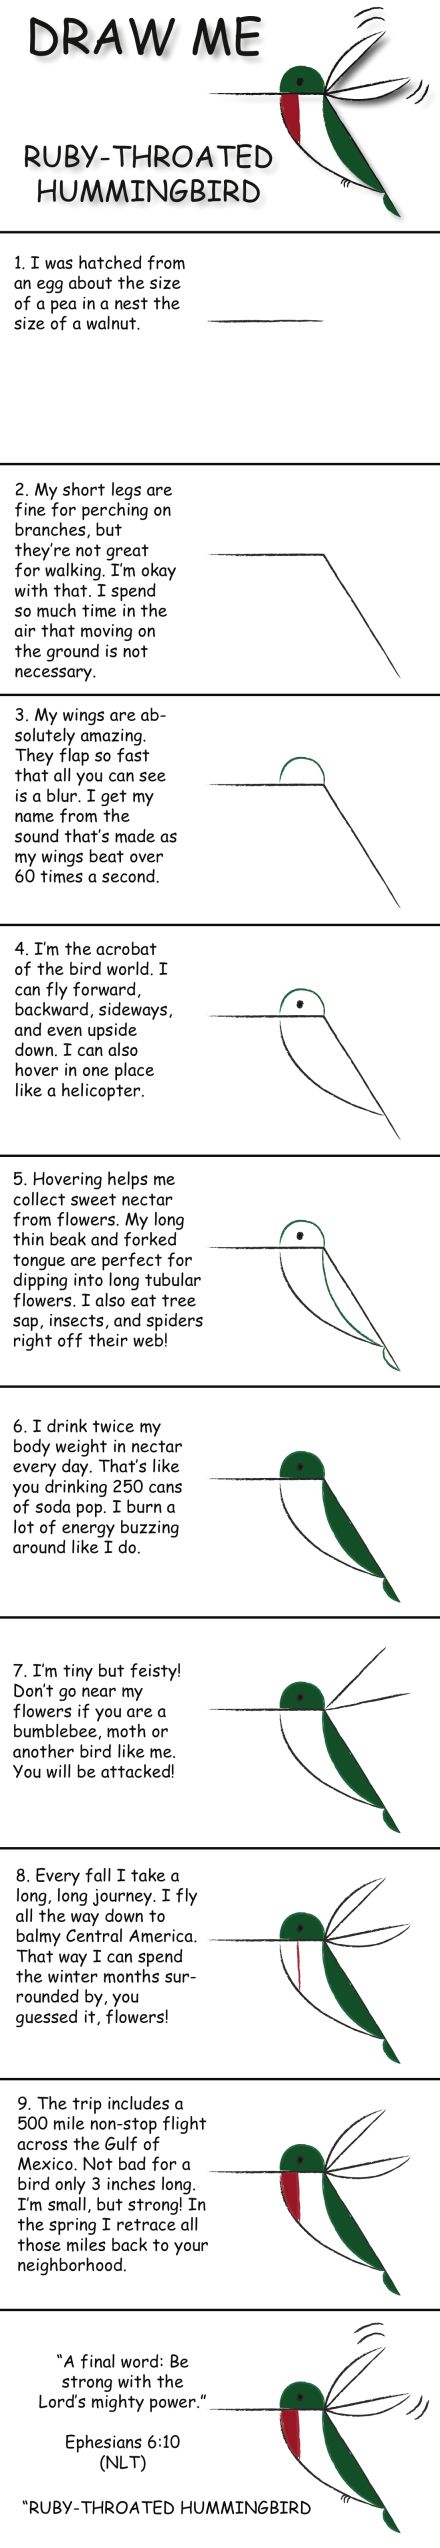 Draw A Rubythroated Hummingbird In 10 Easy Steps And Learn Fun Facts About  Its